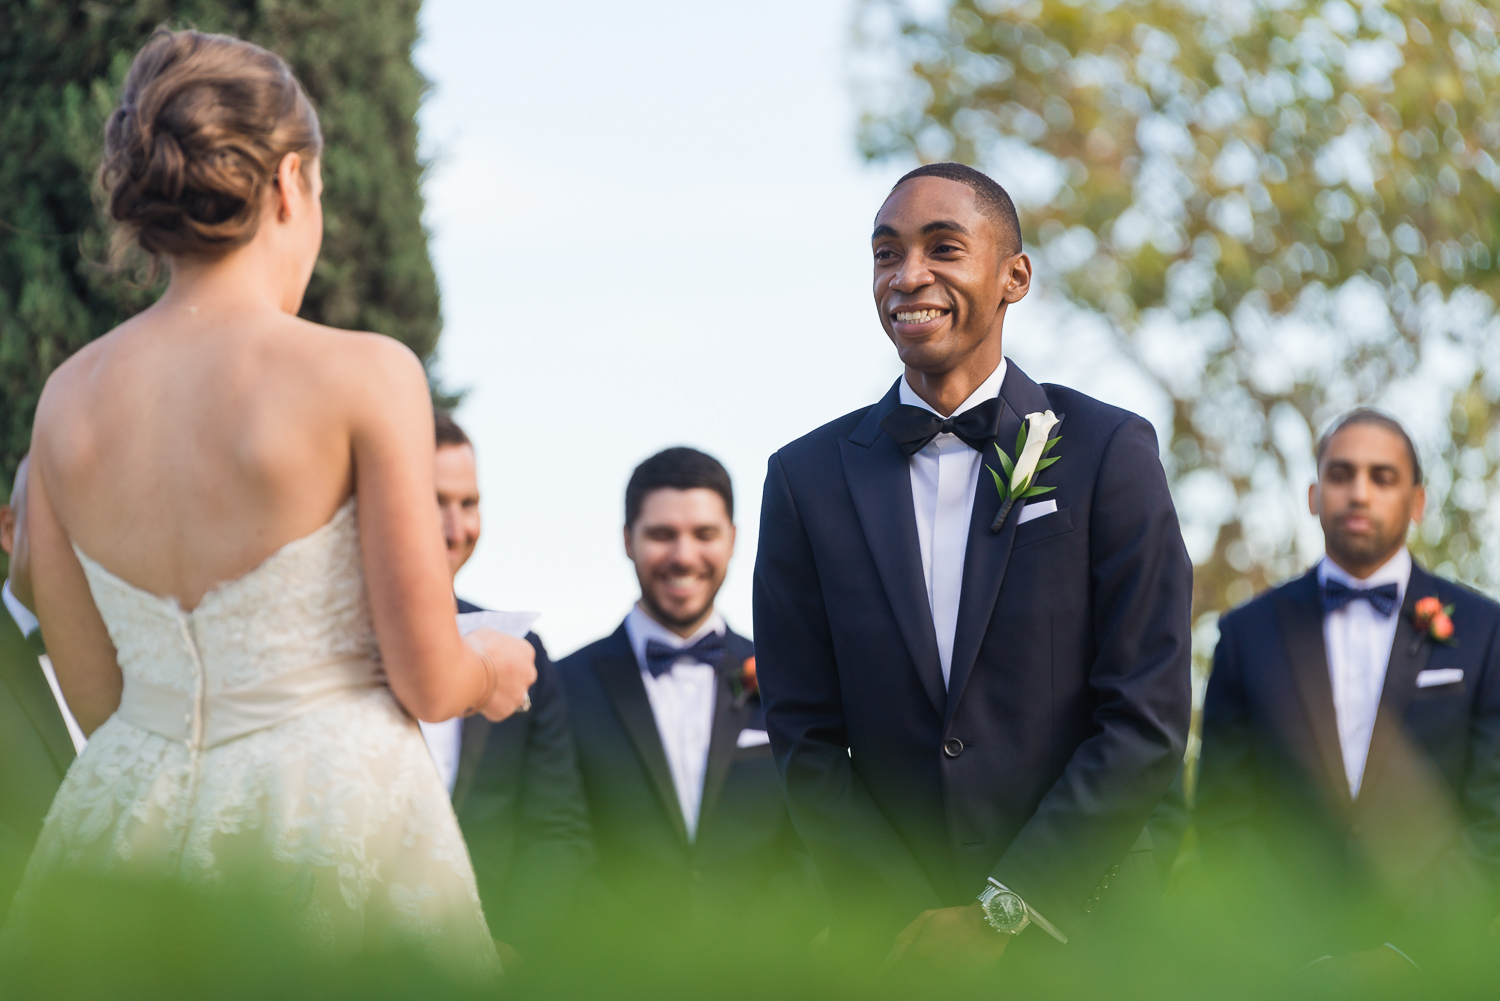 Groom laughing at bride's vows during wedding ceremony